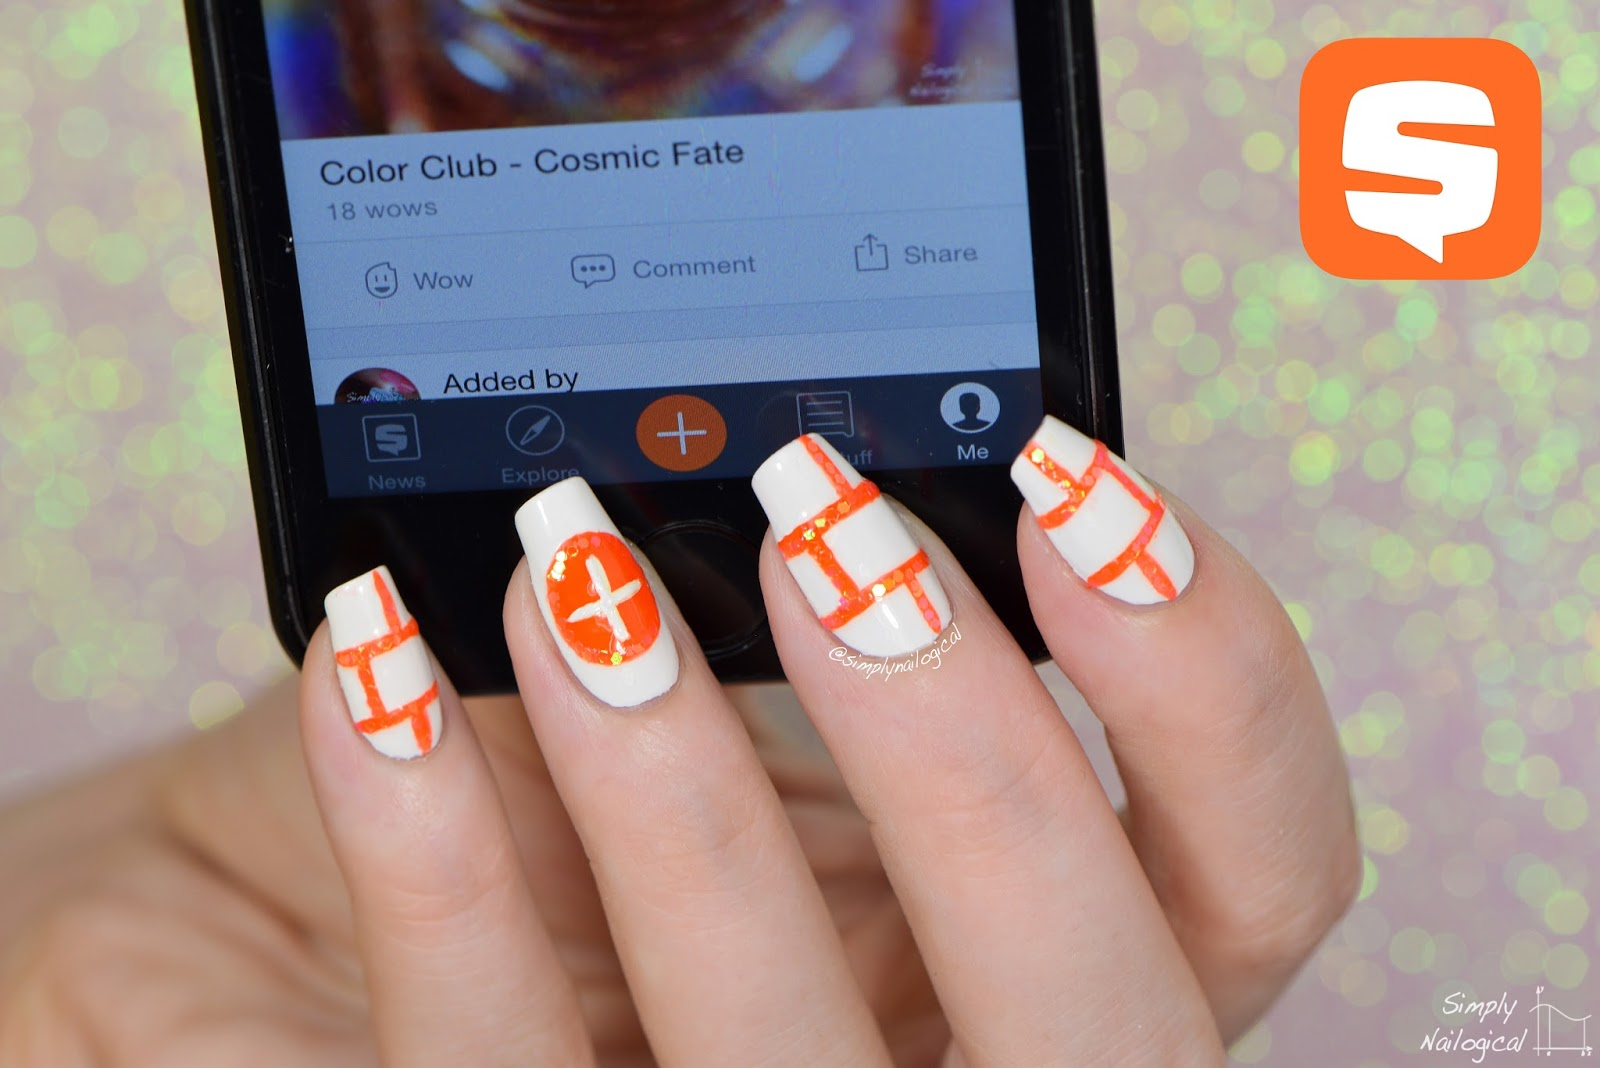 Simply Nailogical: Nail art inspired by the Snupps app - never buy ...